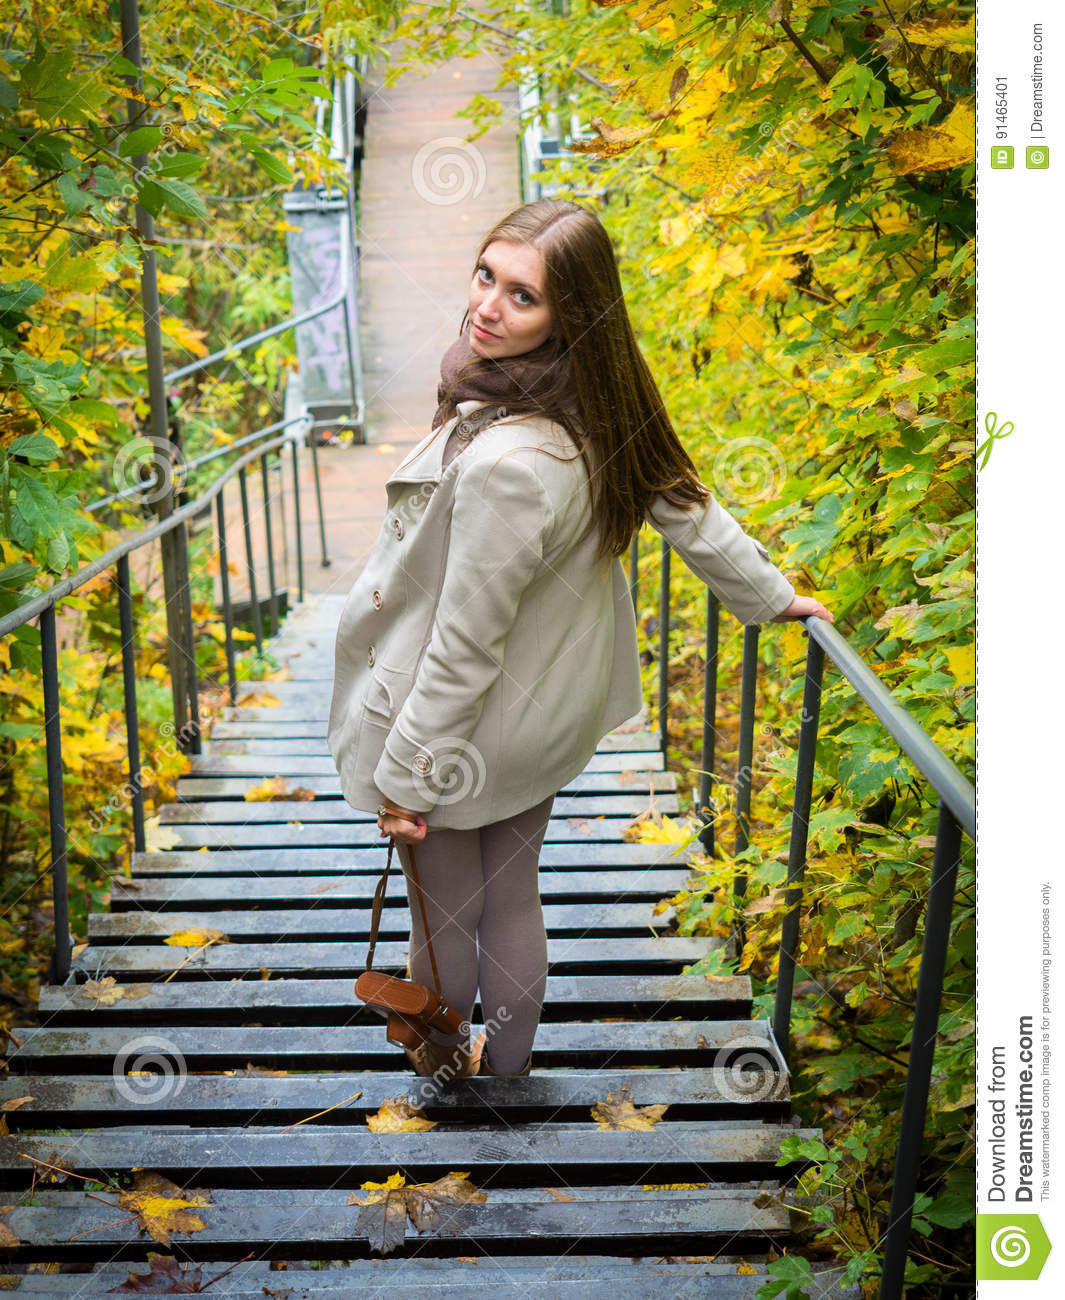 Tourist Girl Walking Down The Stairs Stock Image - Image